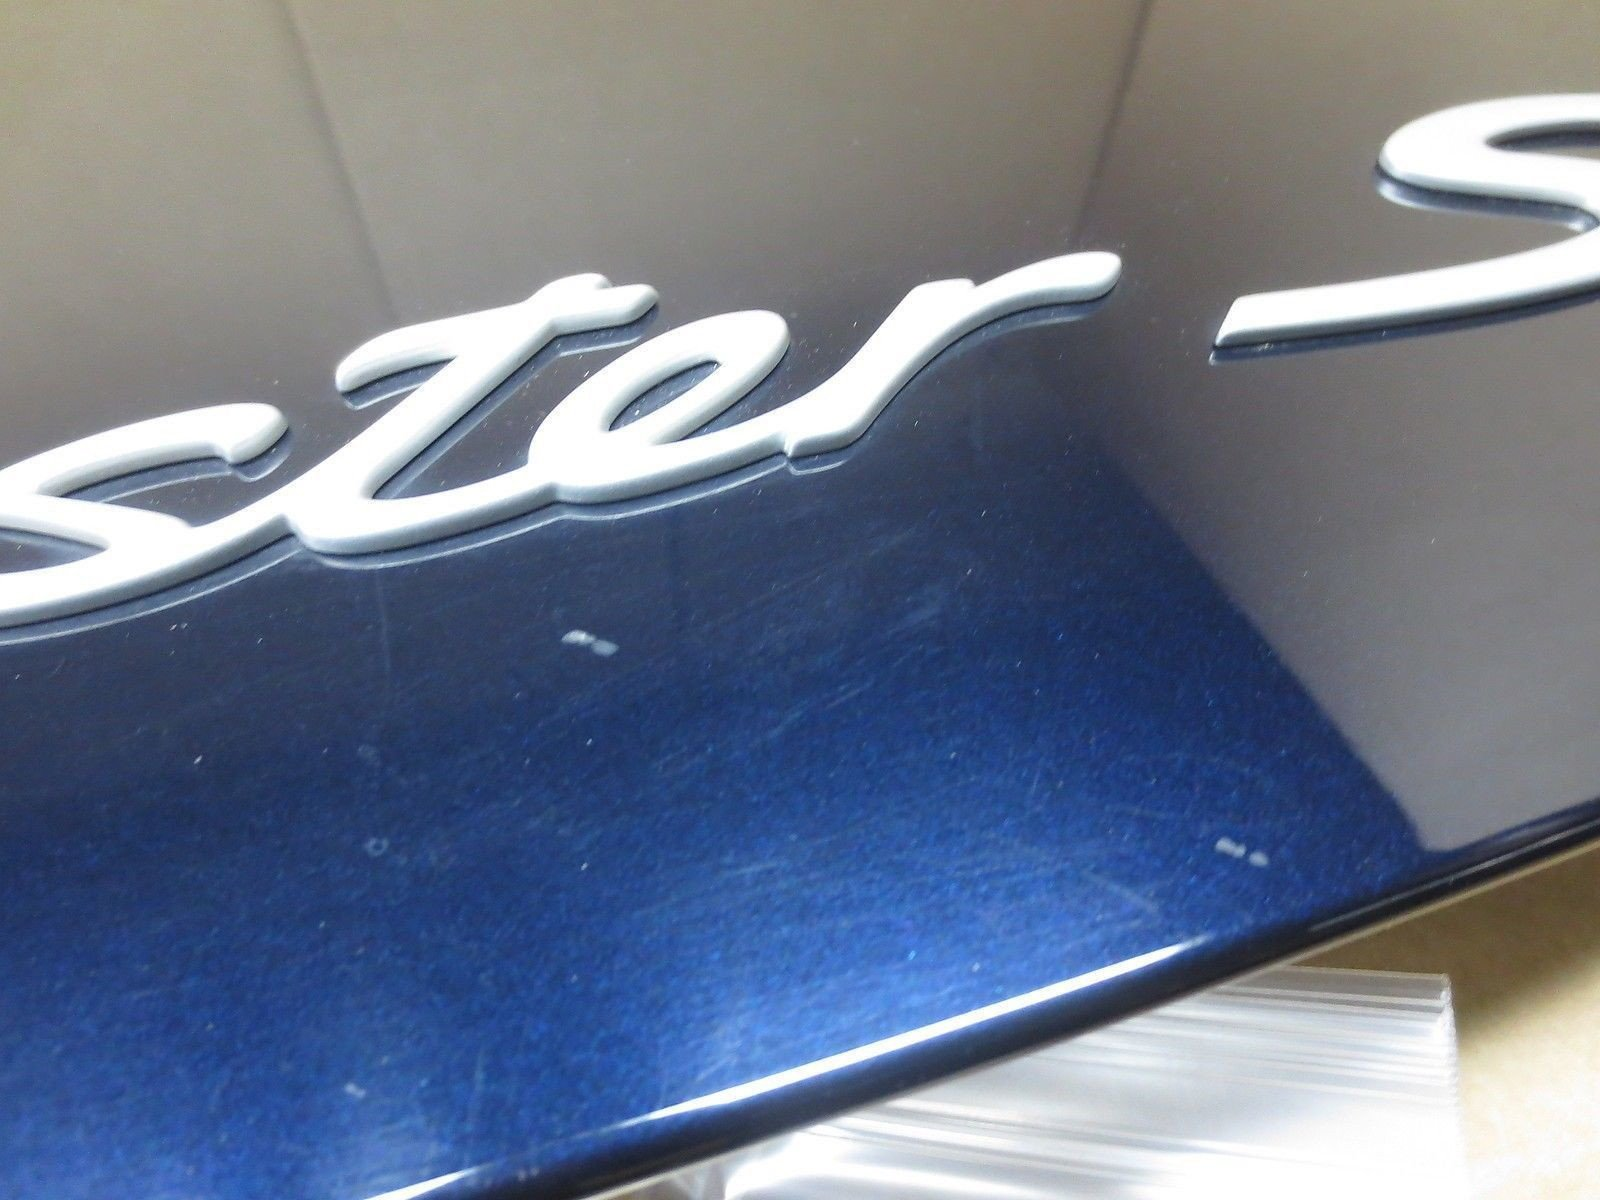 06 Porsche 987 997 BOXSTER S Blue REAR HOOD LID back trunk cover 30,316